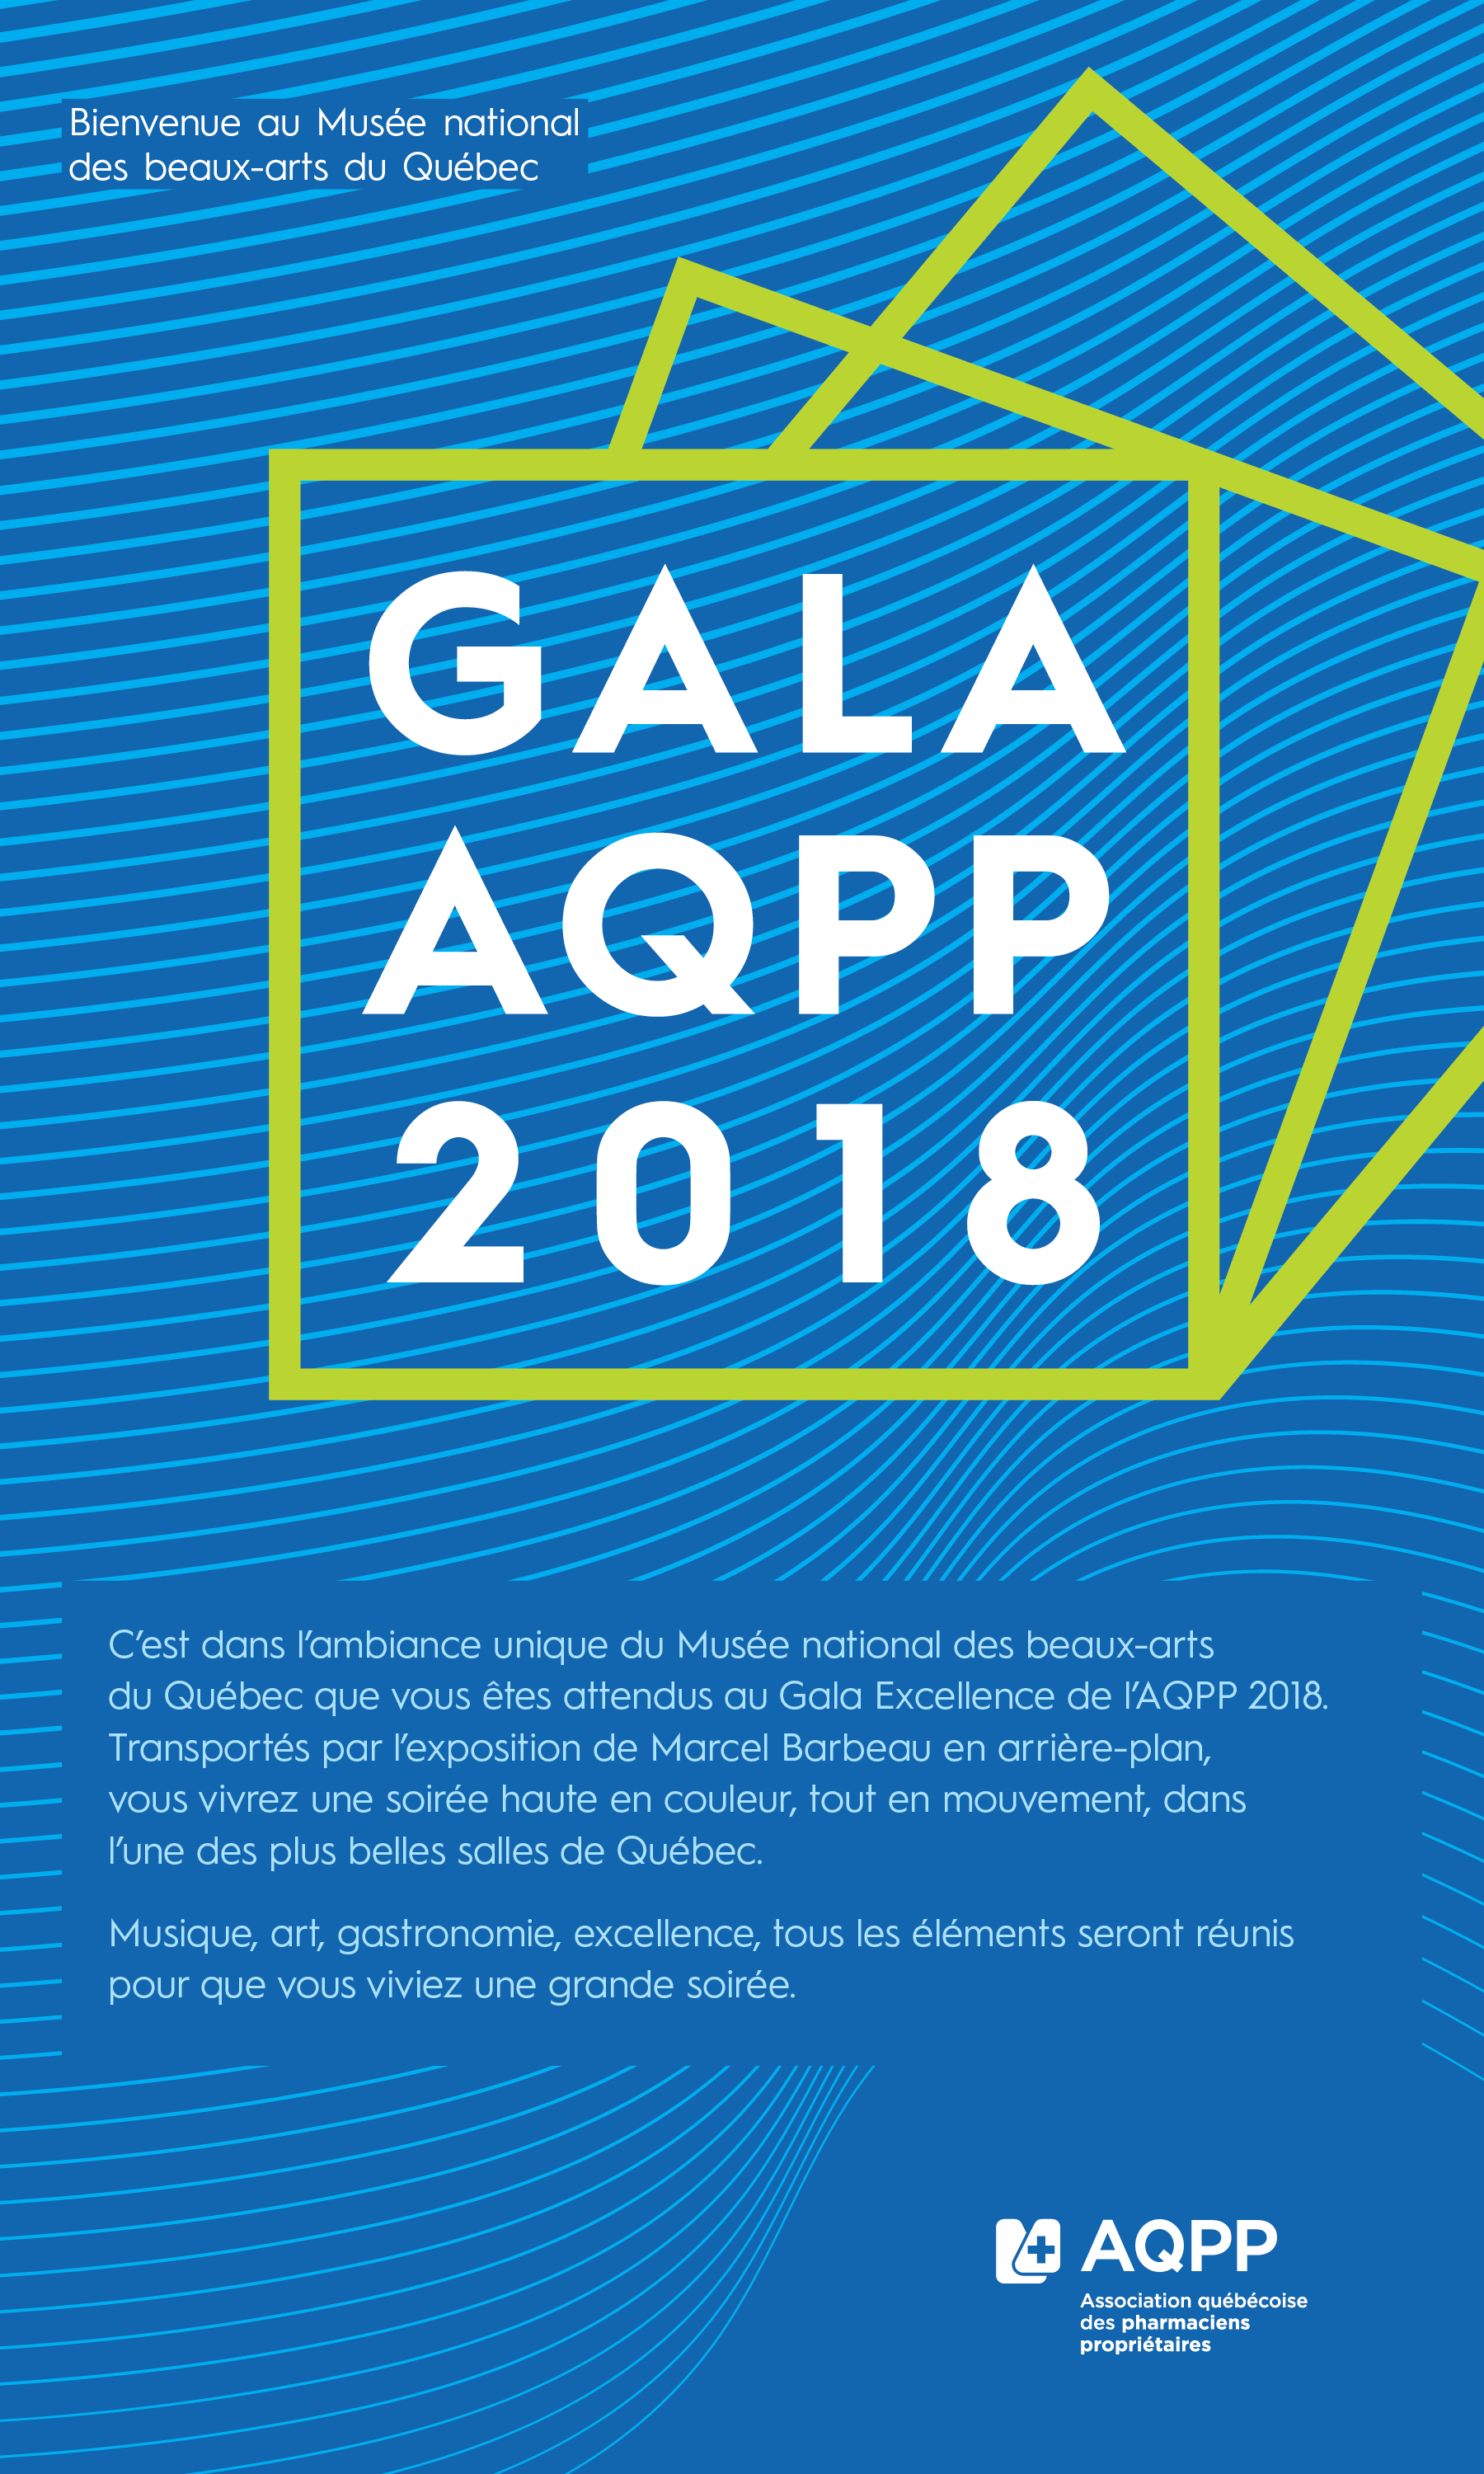 18019_86_AQPP_Gala2018_OnePager_Final.png